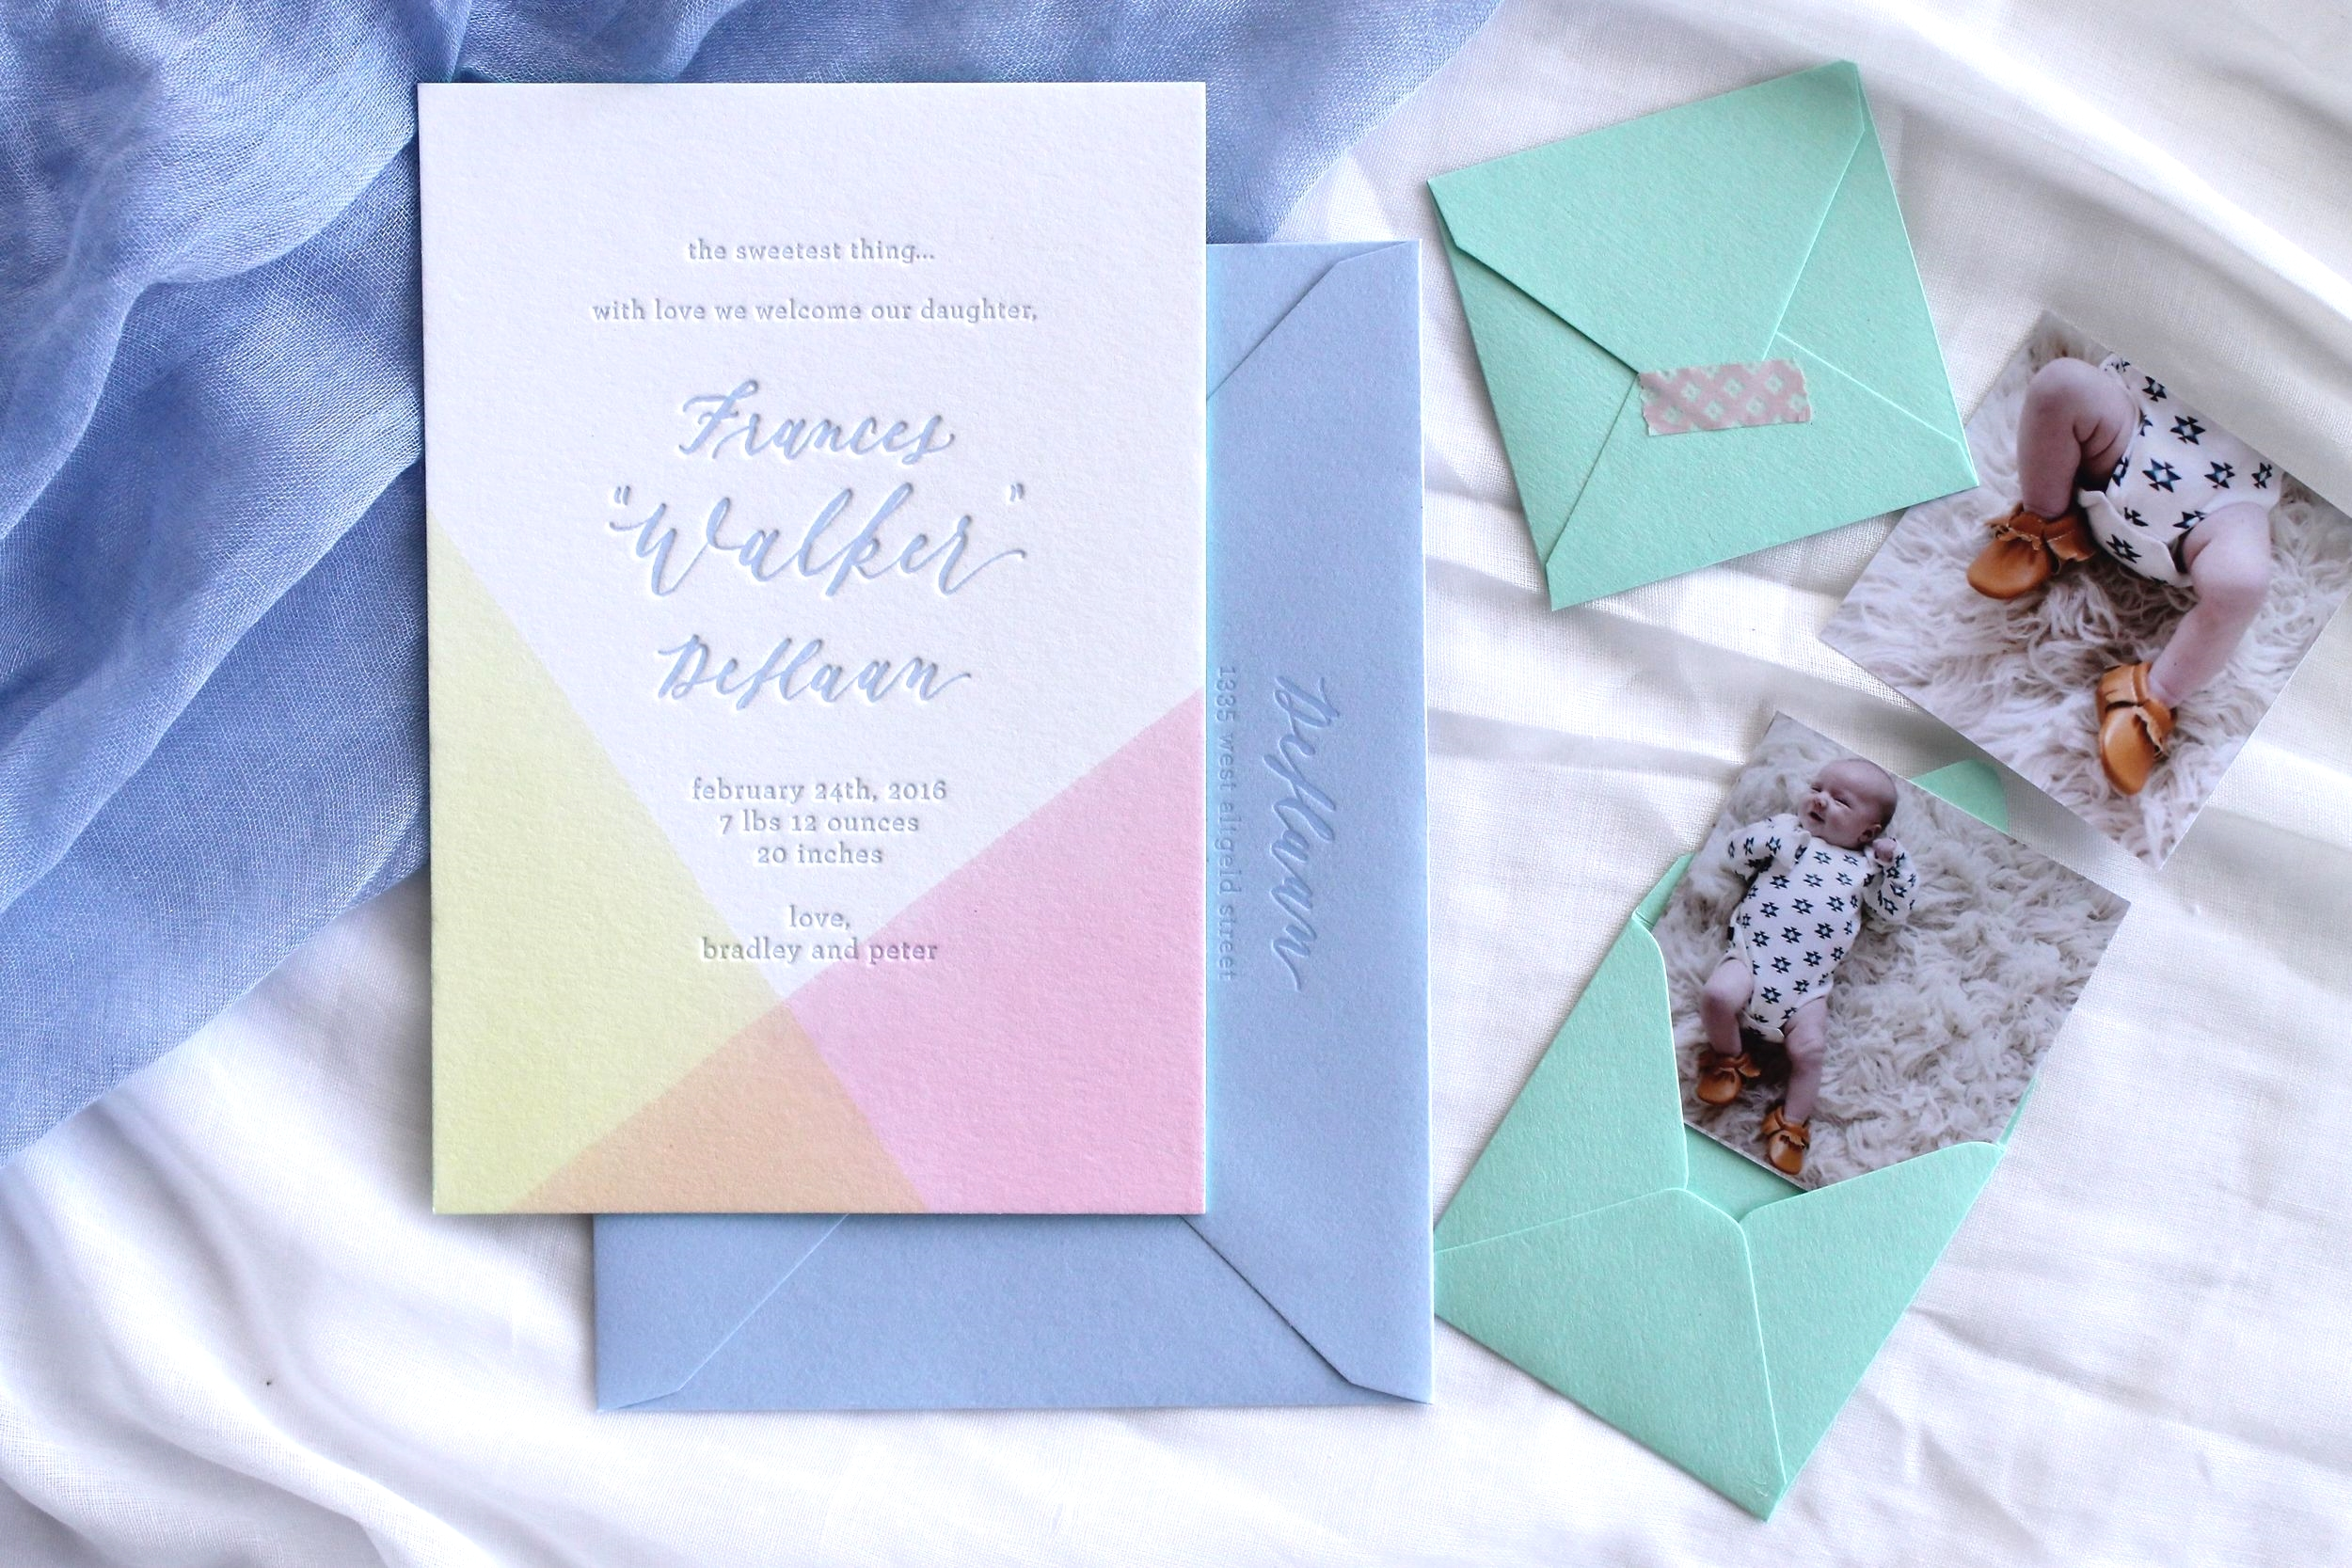 Swell Press Paper Birth Announcements07.jpg